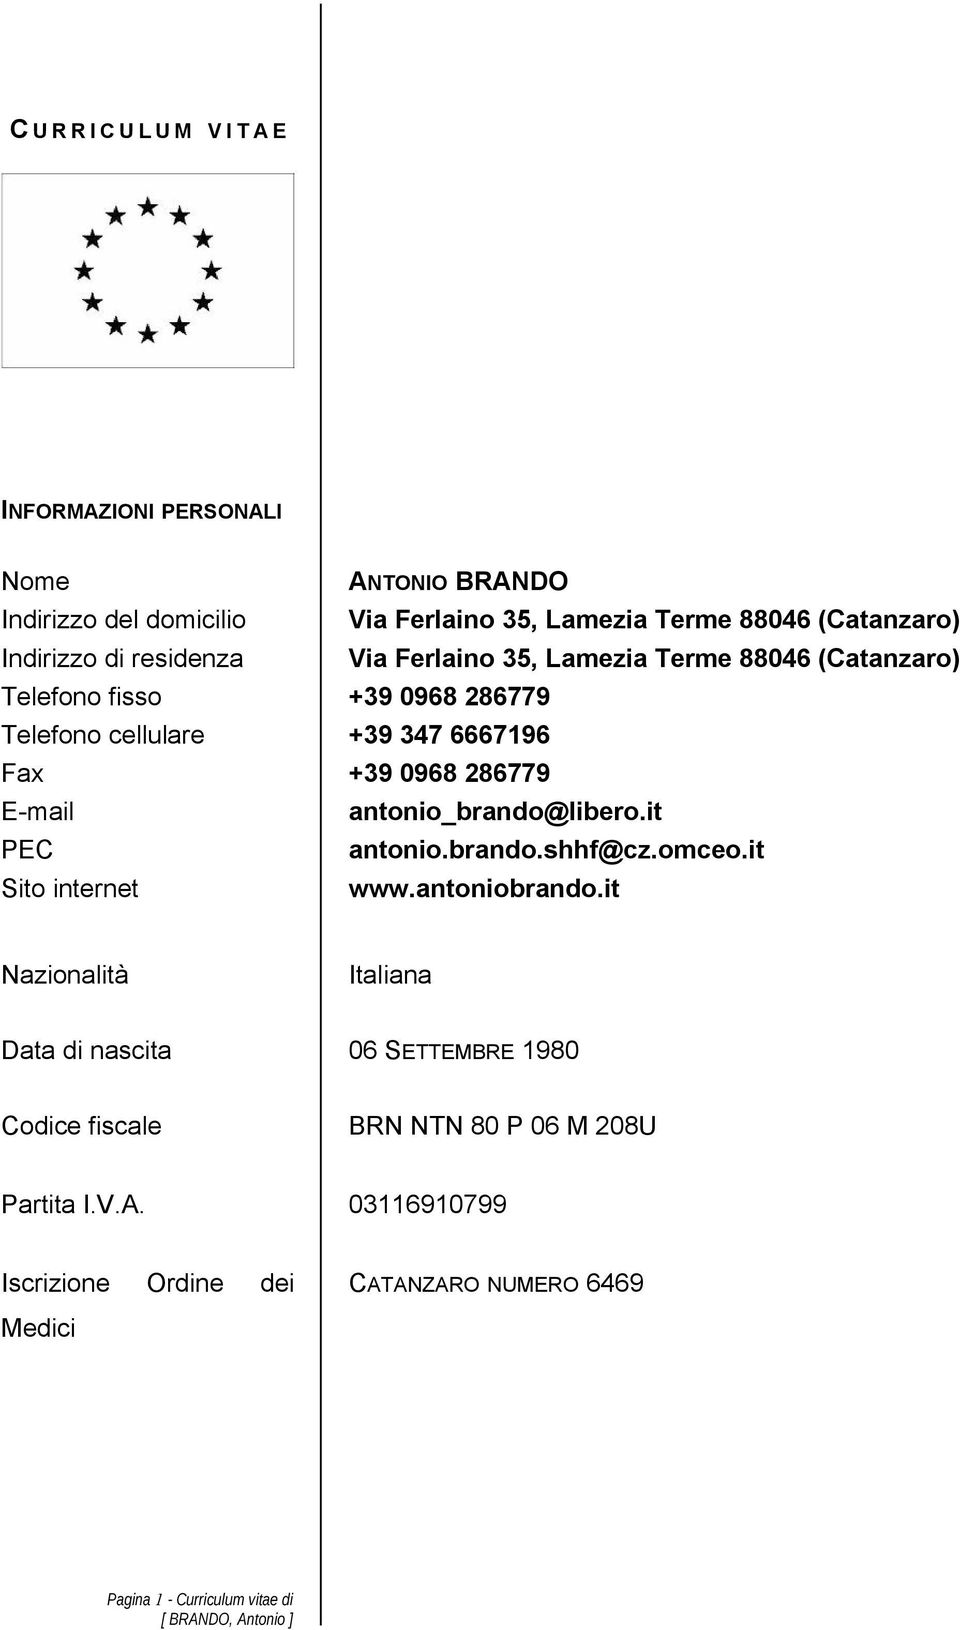 286779 E-mail antonio_brando@libero.it PEC antonio.brando.shhf@cz.omceo.it Sito internet www.antoniobrando.